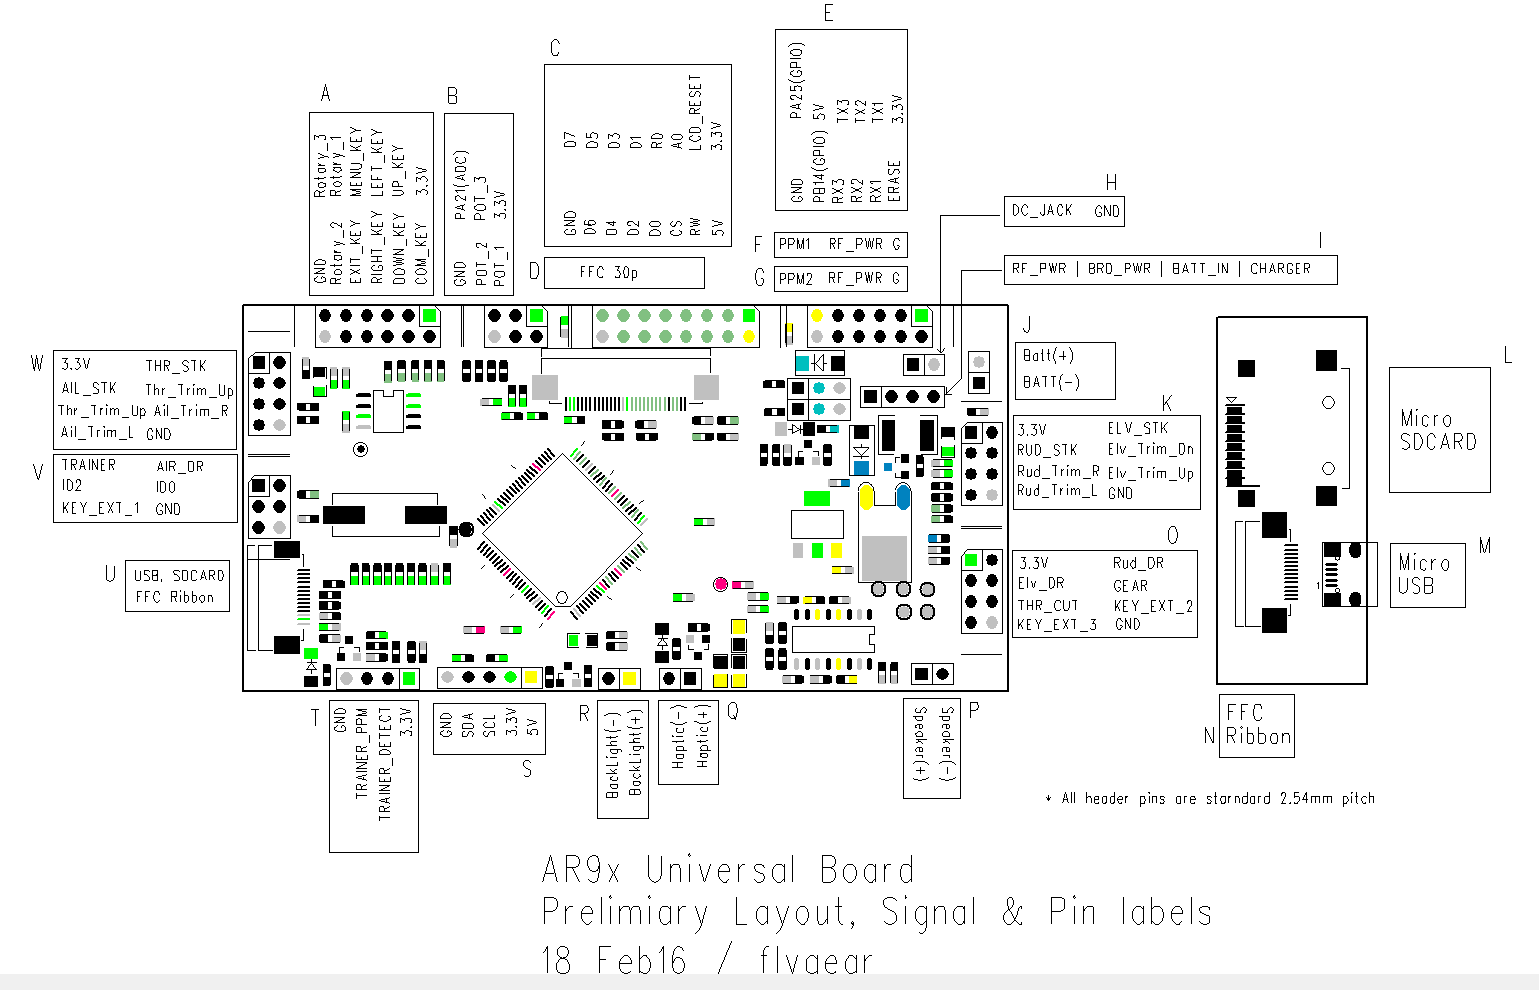 Aruni Ar Universal Board Page 11 Rc Groups Trim Pot Wiring This Image Has Been Resized Click Bar To View The Full Original Is Sized 1539x990